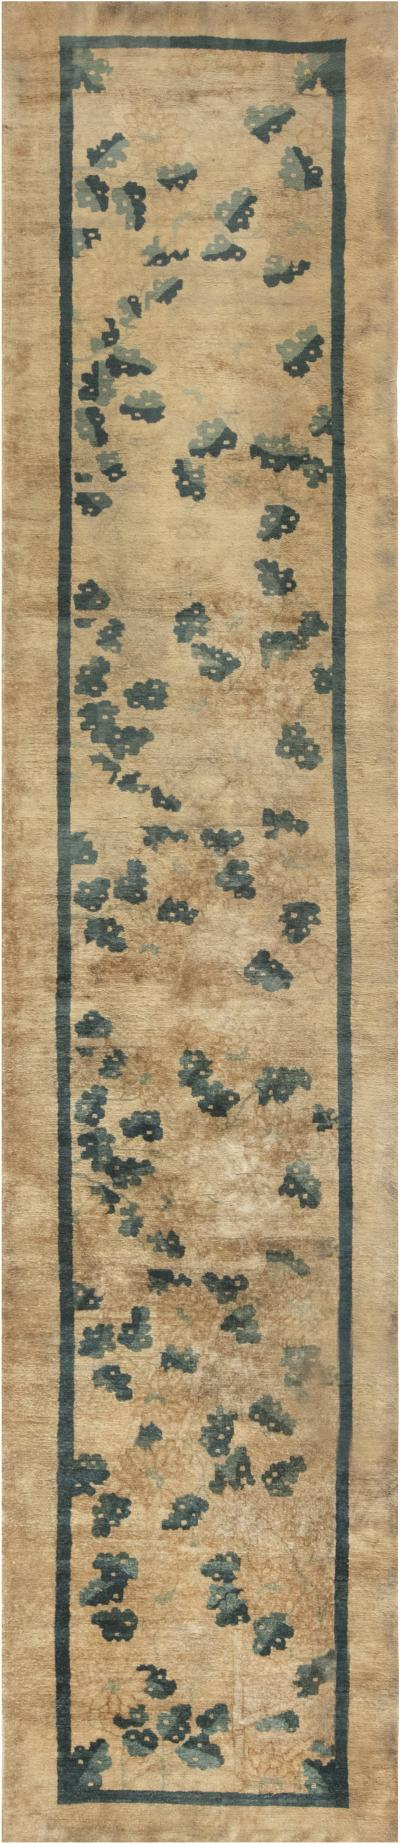 Antique Chinese Runner size adjusted